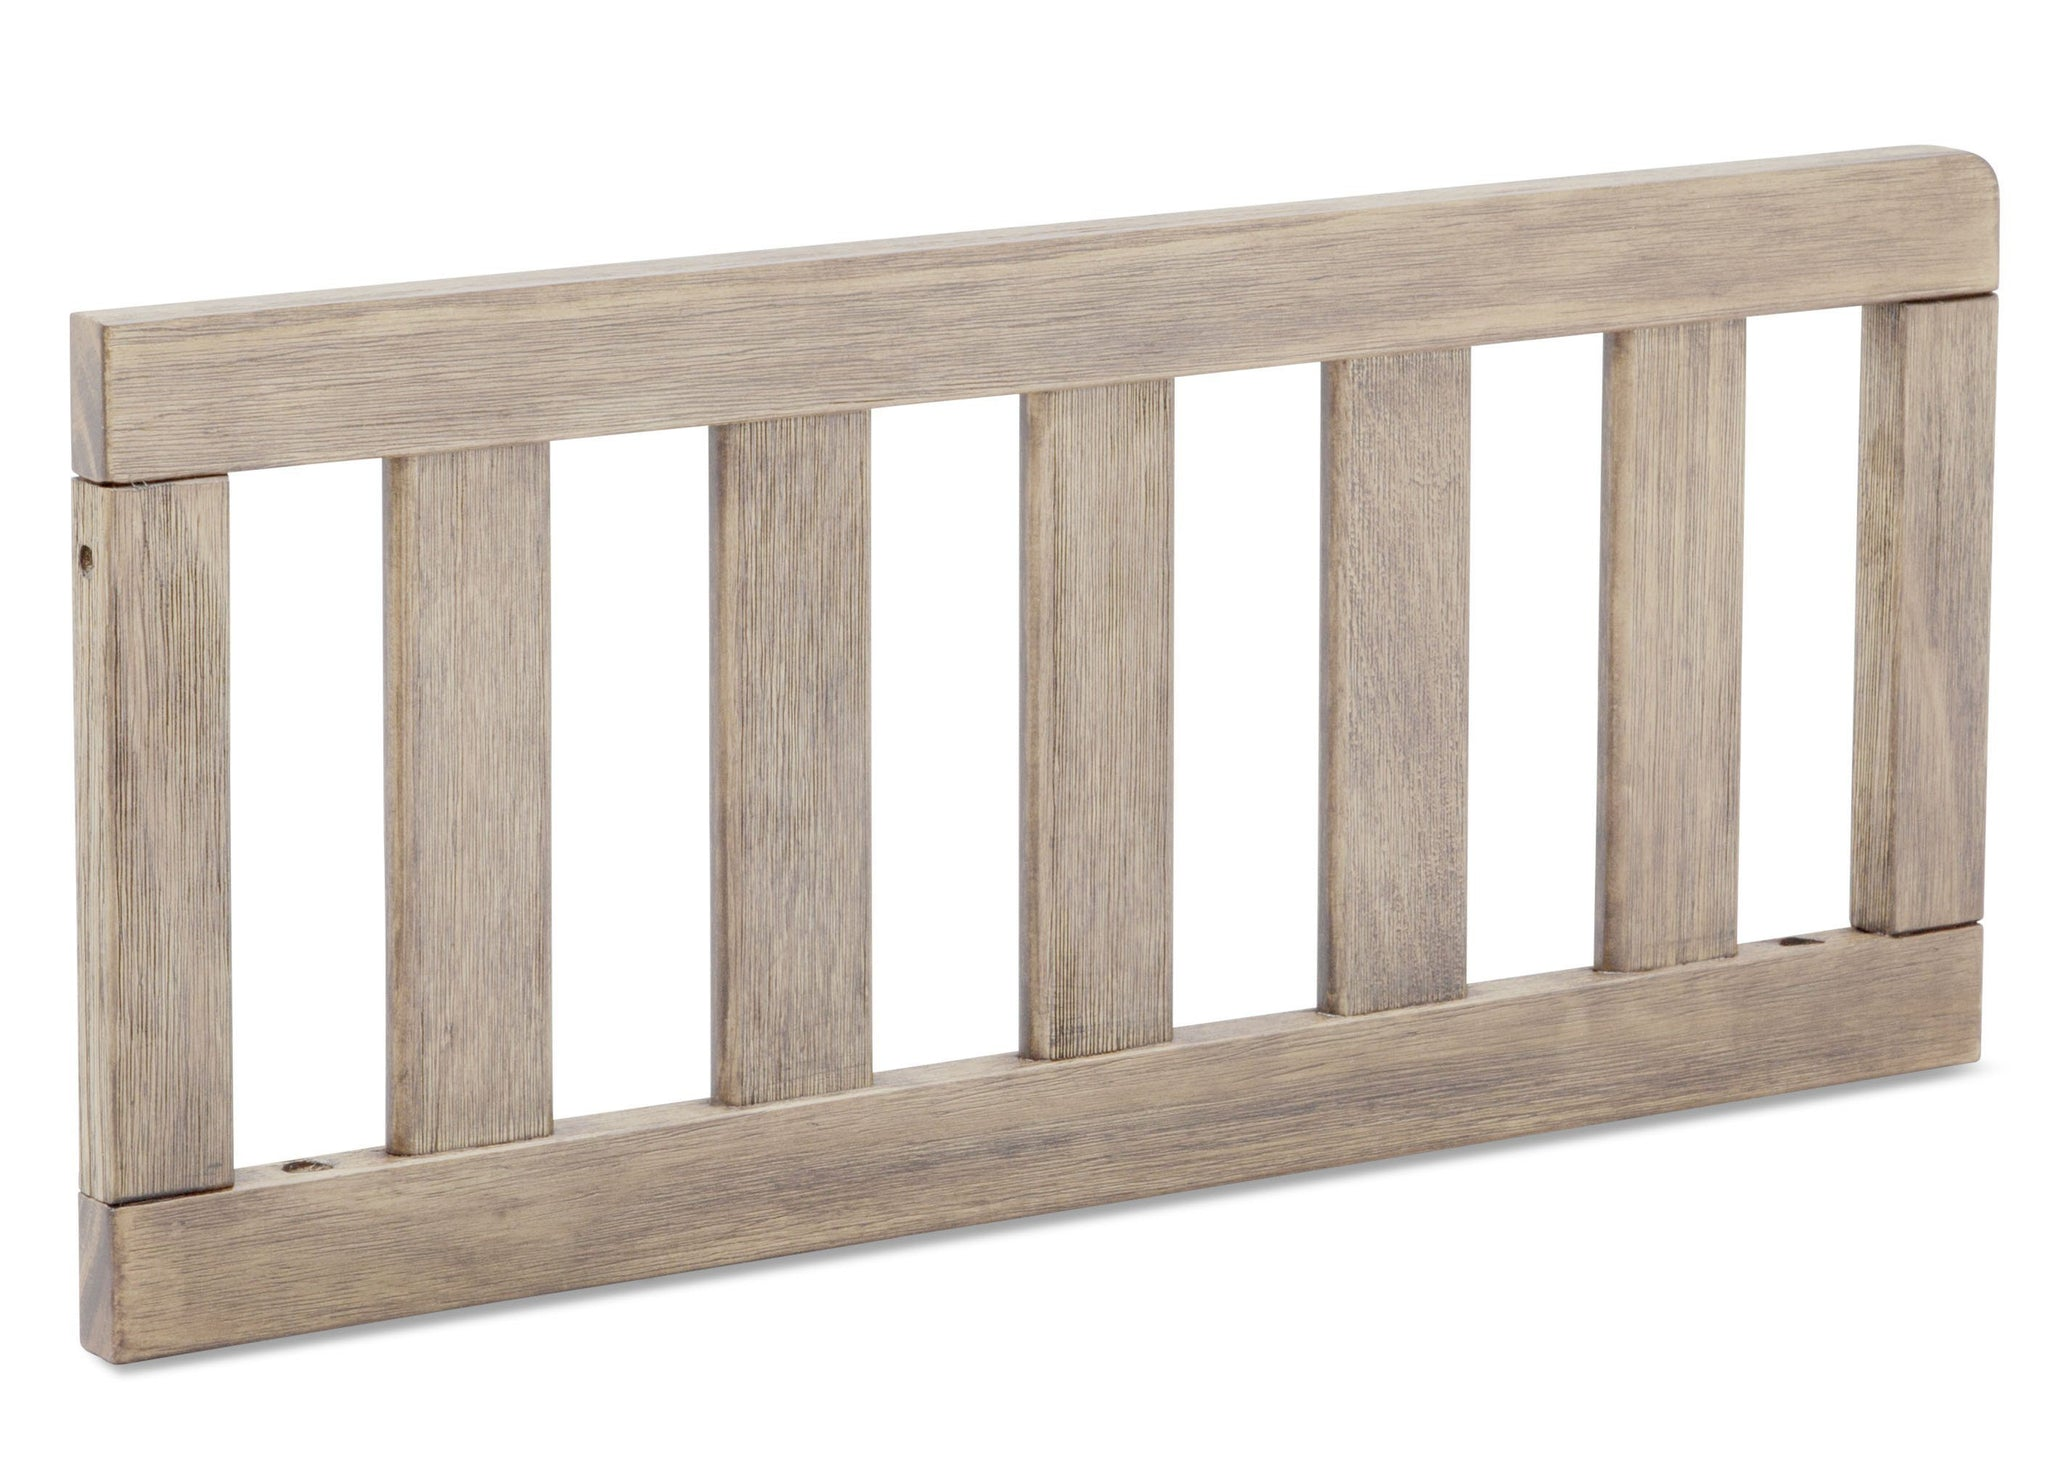 Serta Rustic Driftwood (112) Toddler Guardrail (701725), side view, b3b